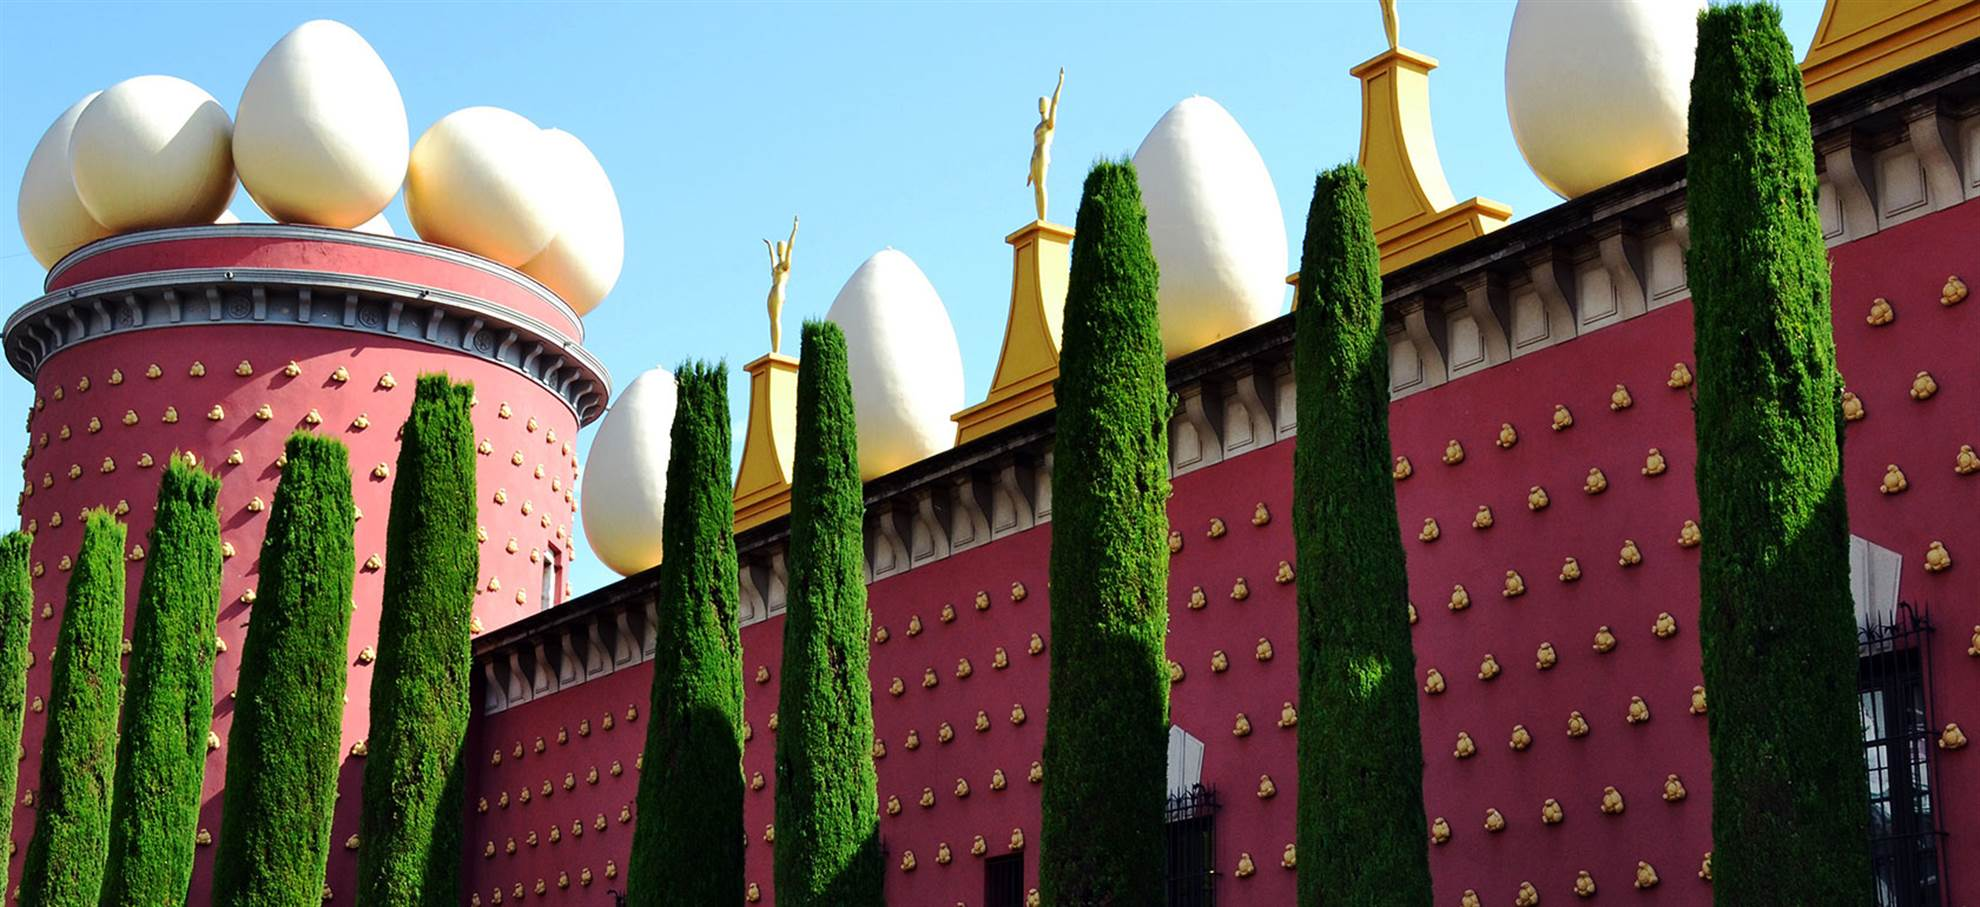 Dali Museum: Skip the line ticket + Transfer by bus from Barcelona